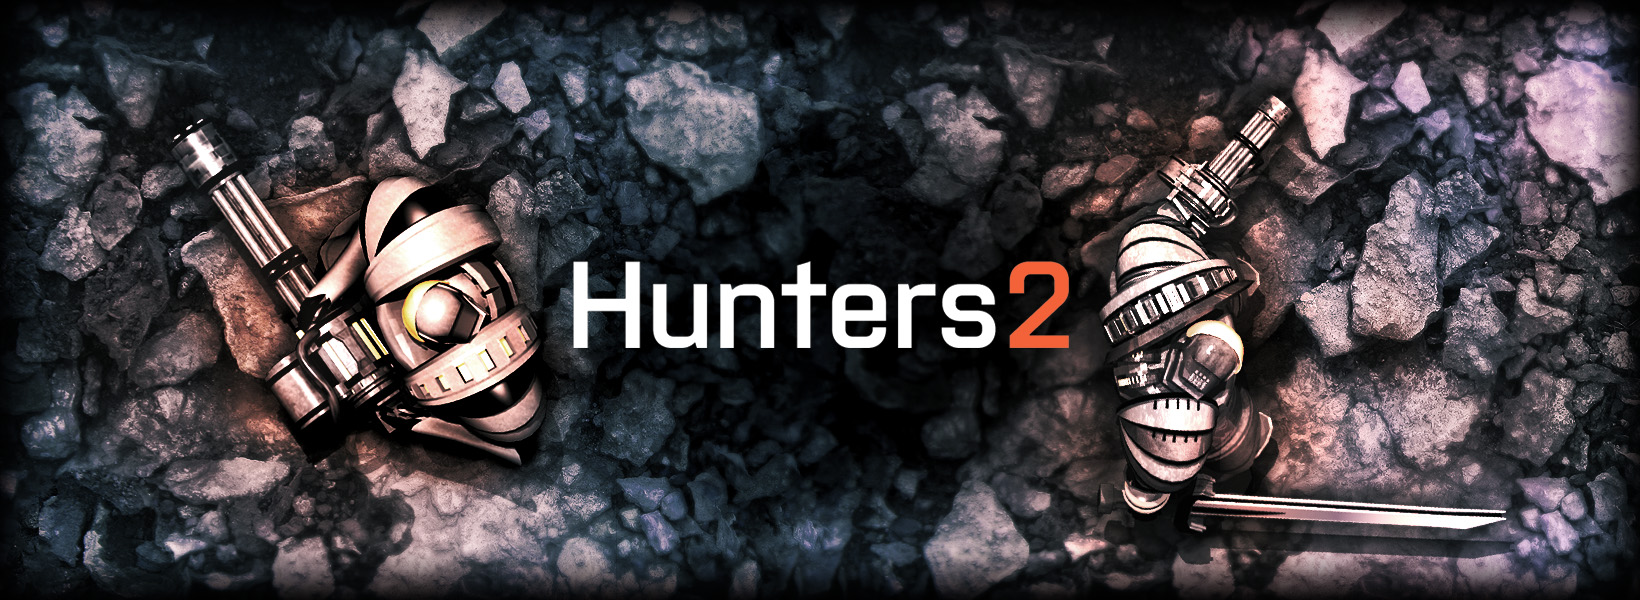 Widescreen_Hunters2_Chars